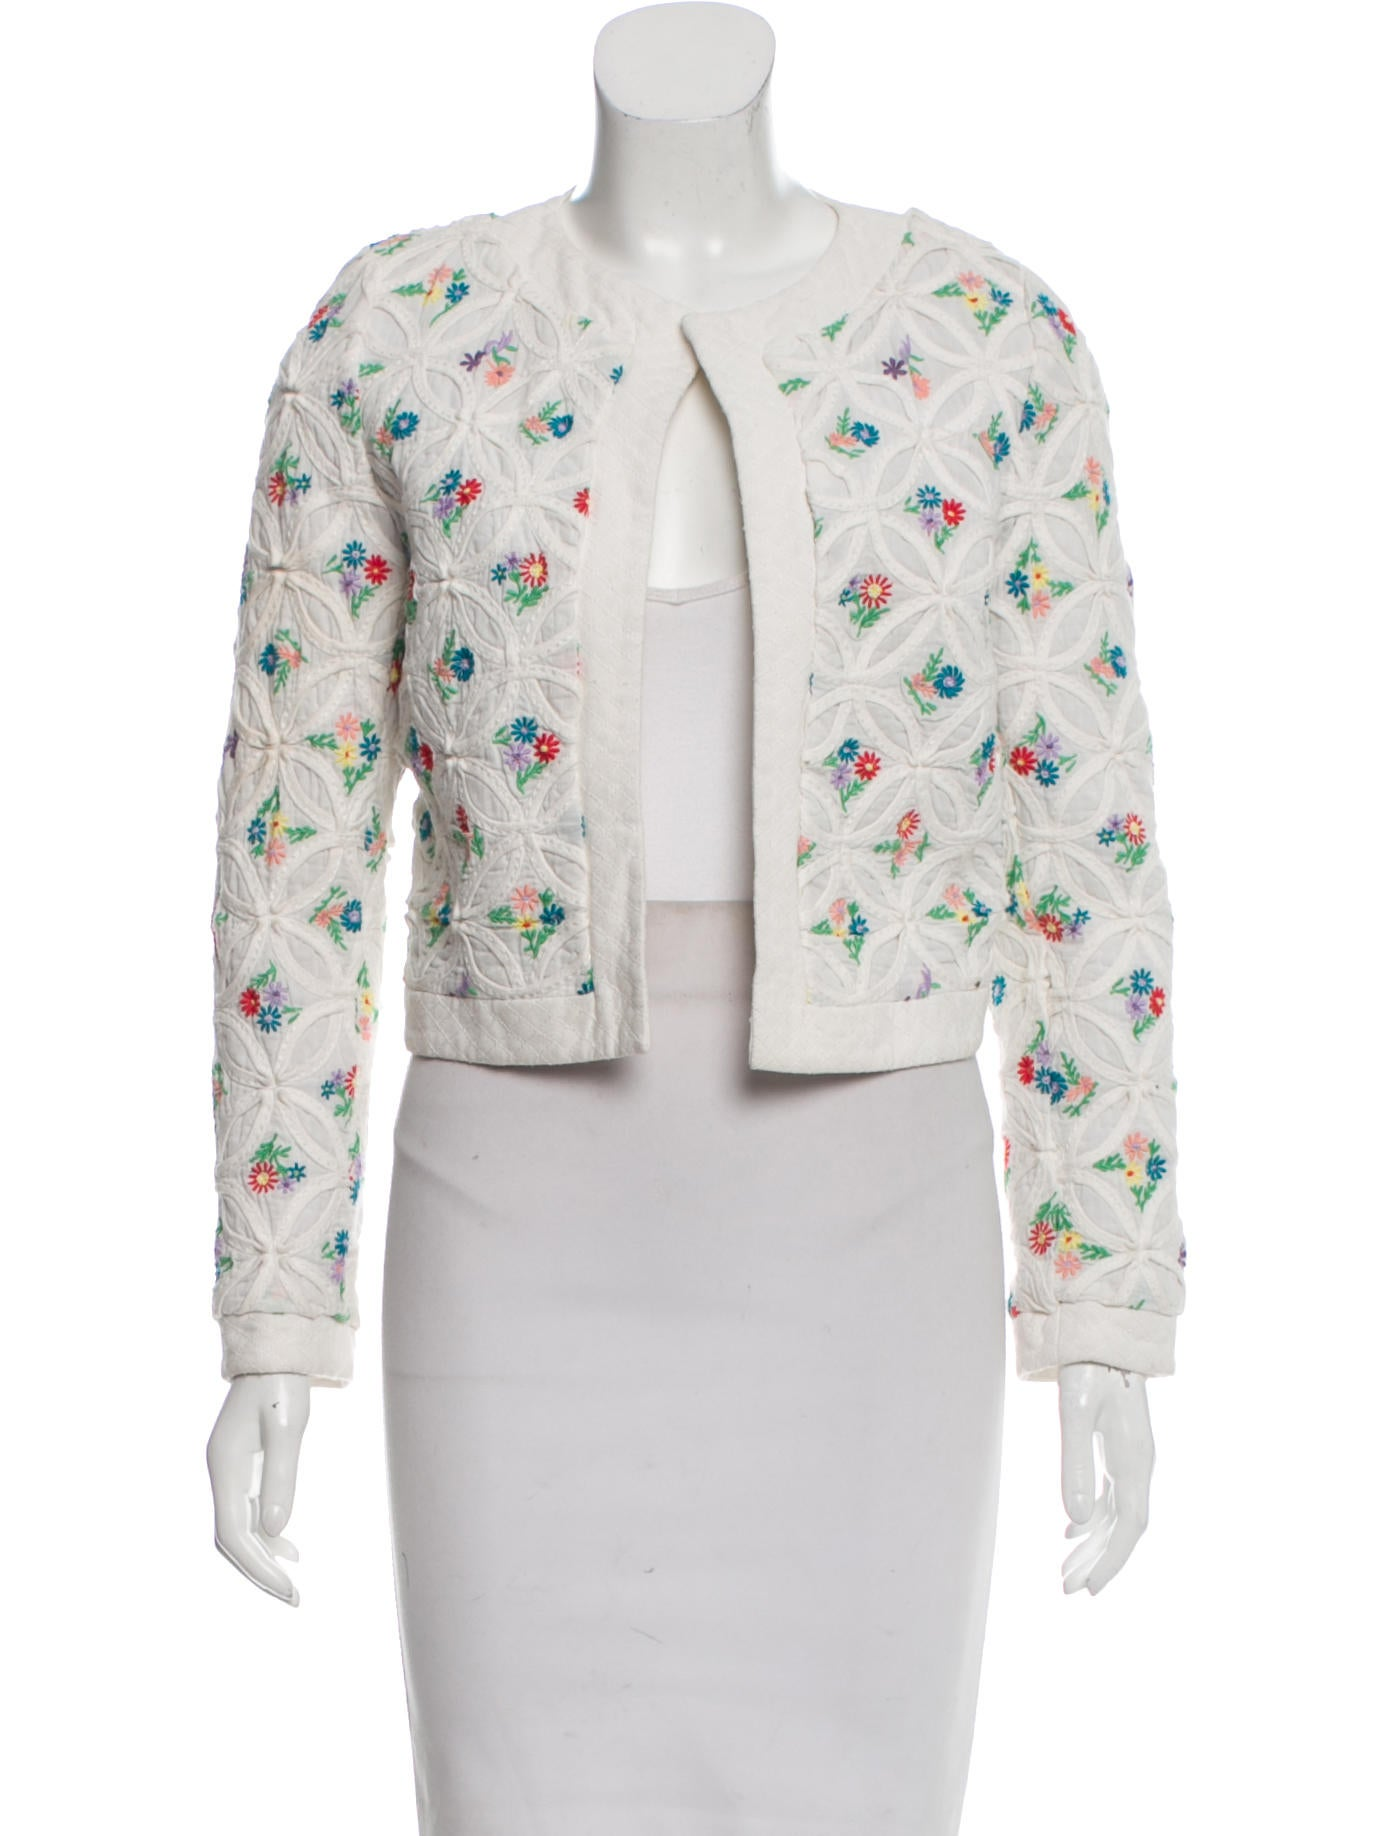 Manoush Embroidered Long Sleeve Jacket - Clothing - MNH20041 | The RealReal